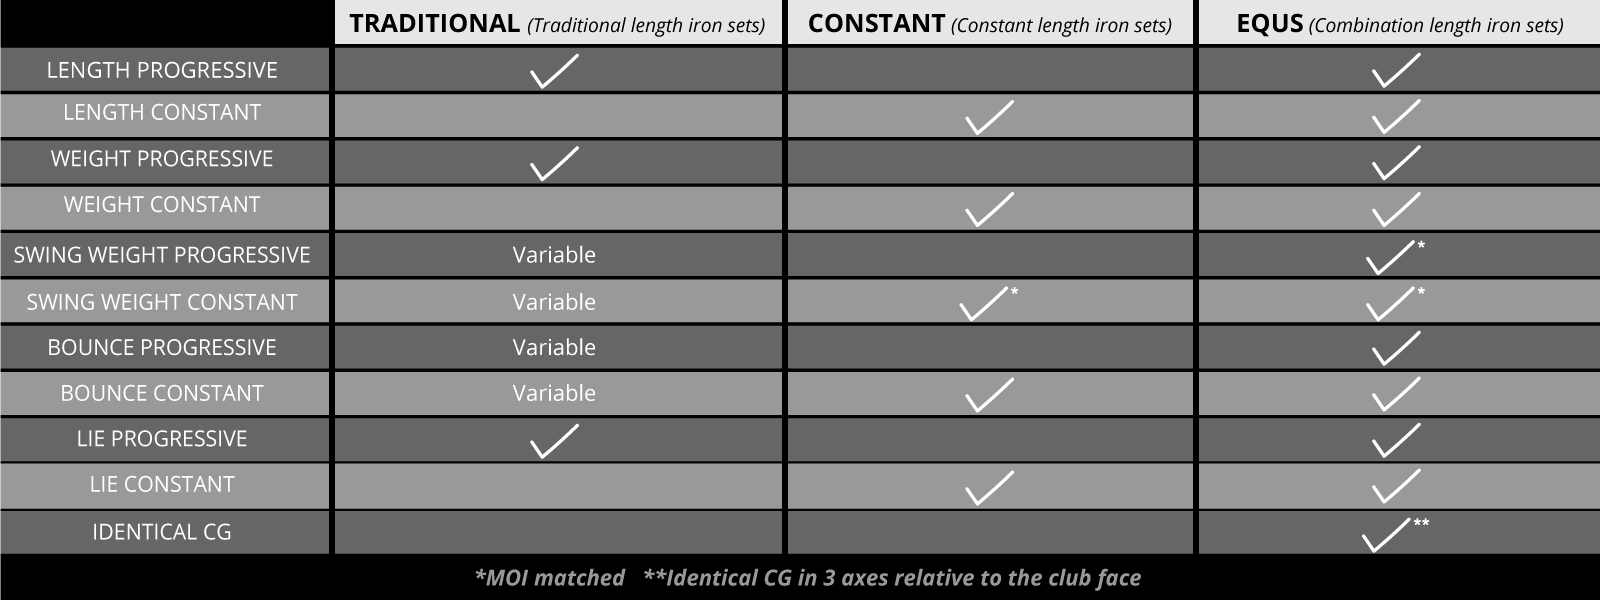 EQUS Golf Club Comparison to Traditional Clubs